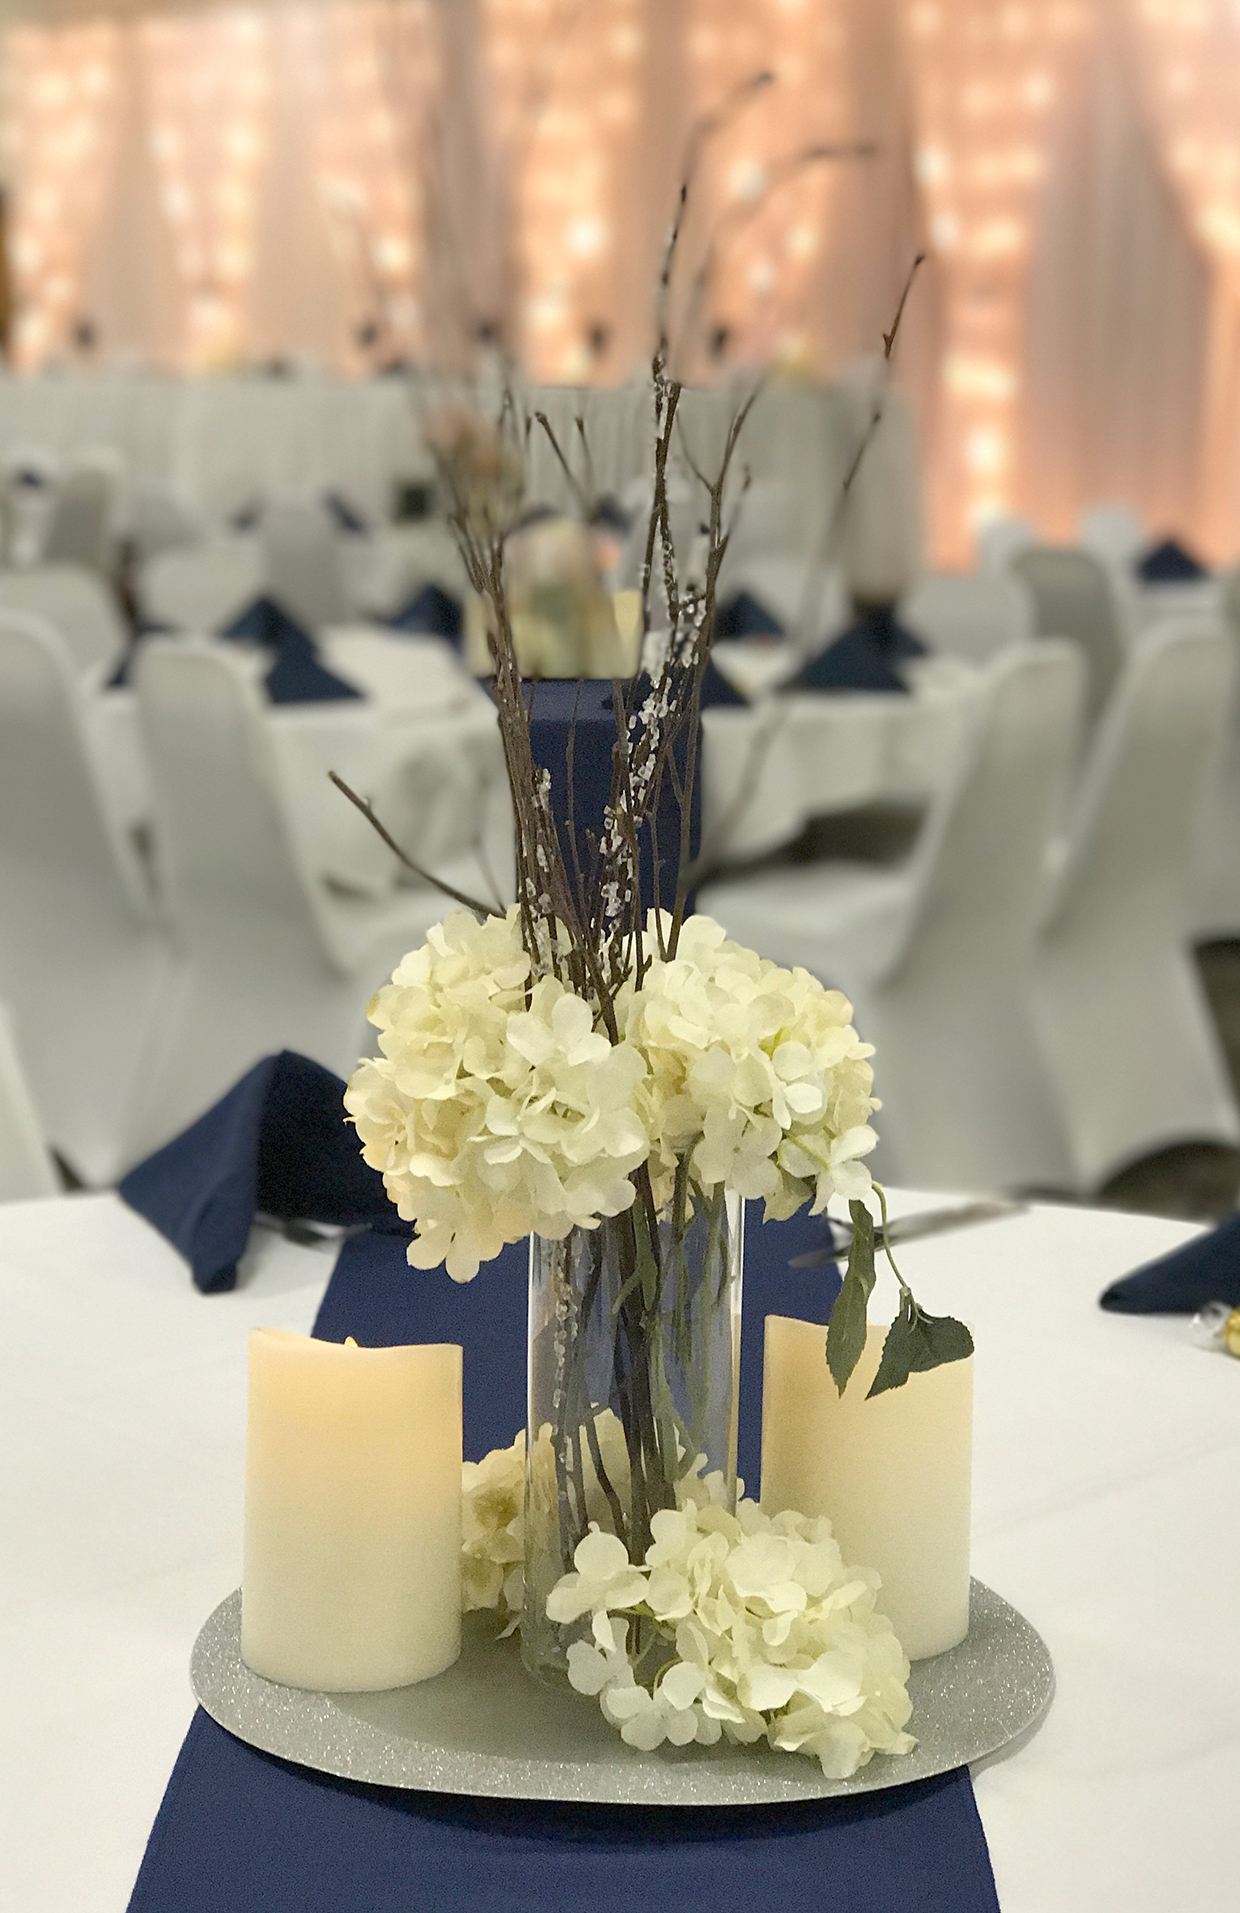 Need Some Help With Your Winter Wedding Hitch Studio Does Styling Planning And Even The Invitations To Match